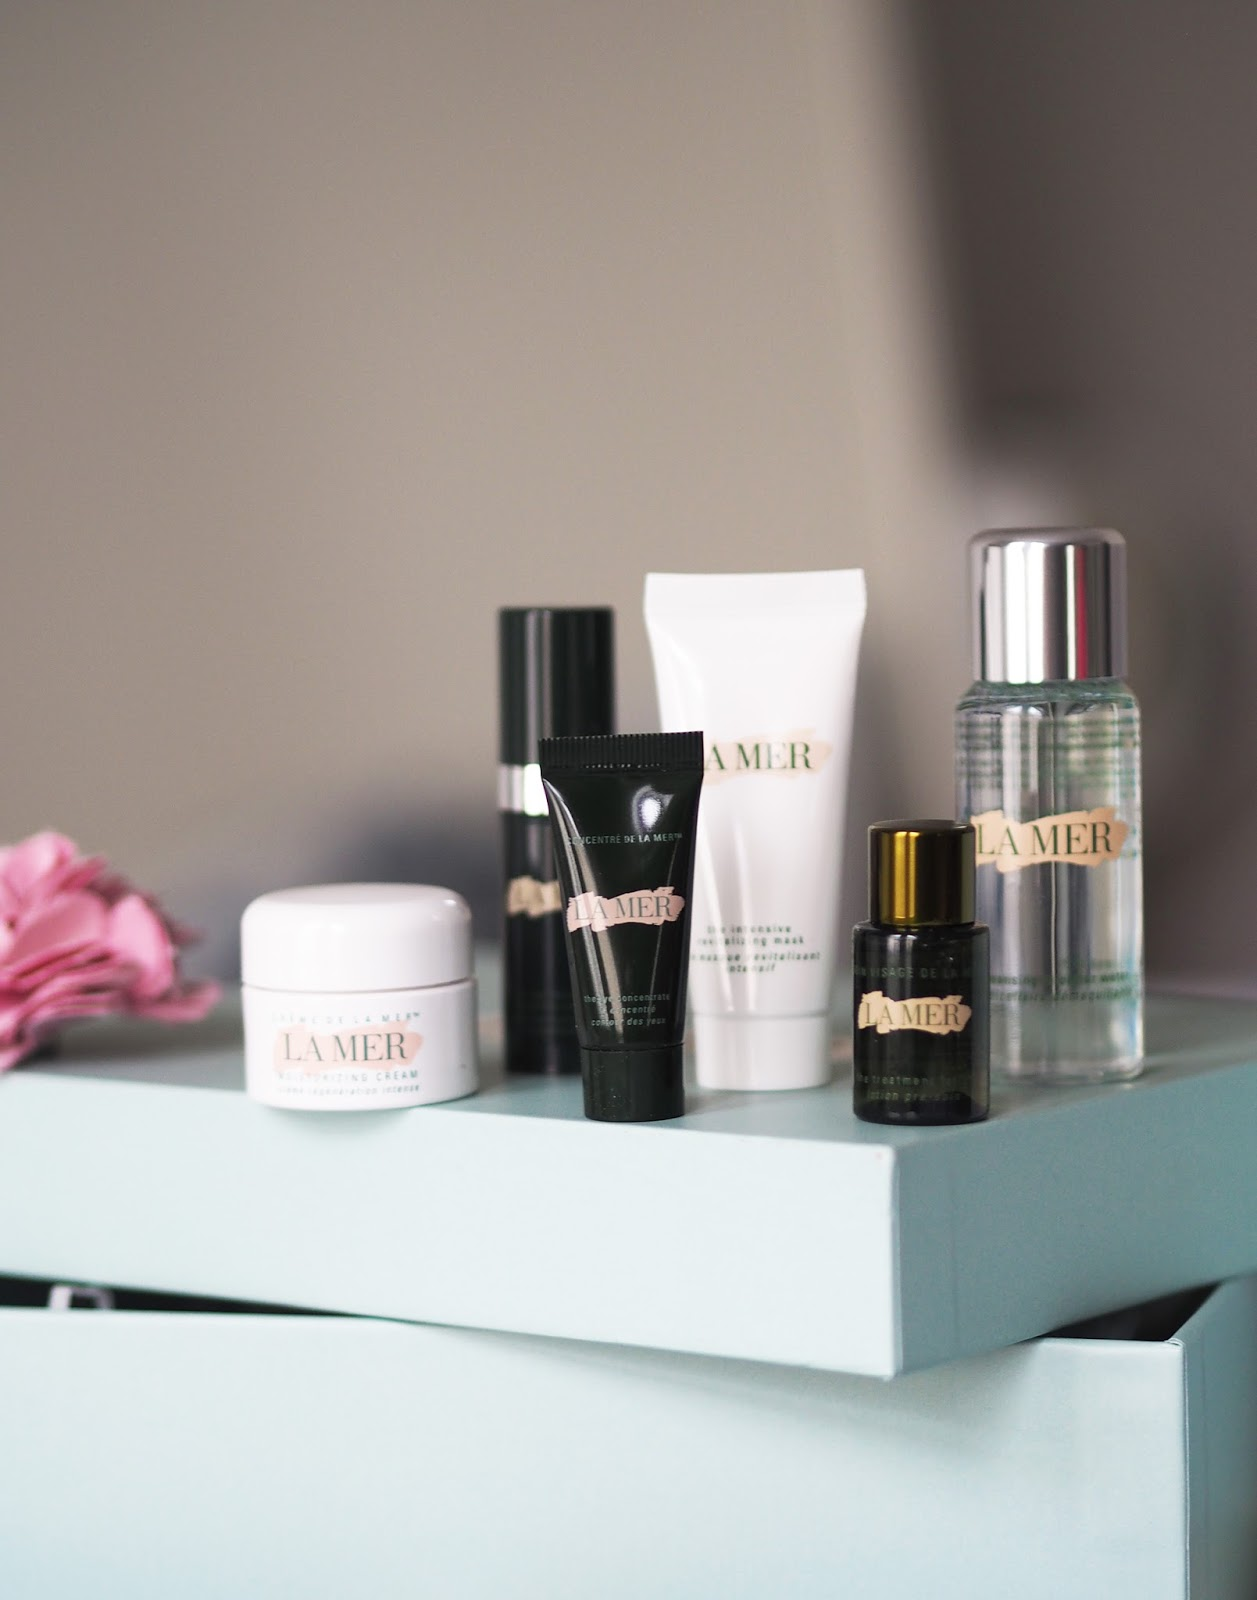 Glossybox La Mer limited edition box contents and review